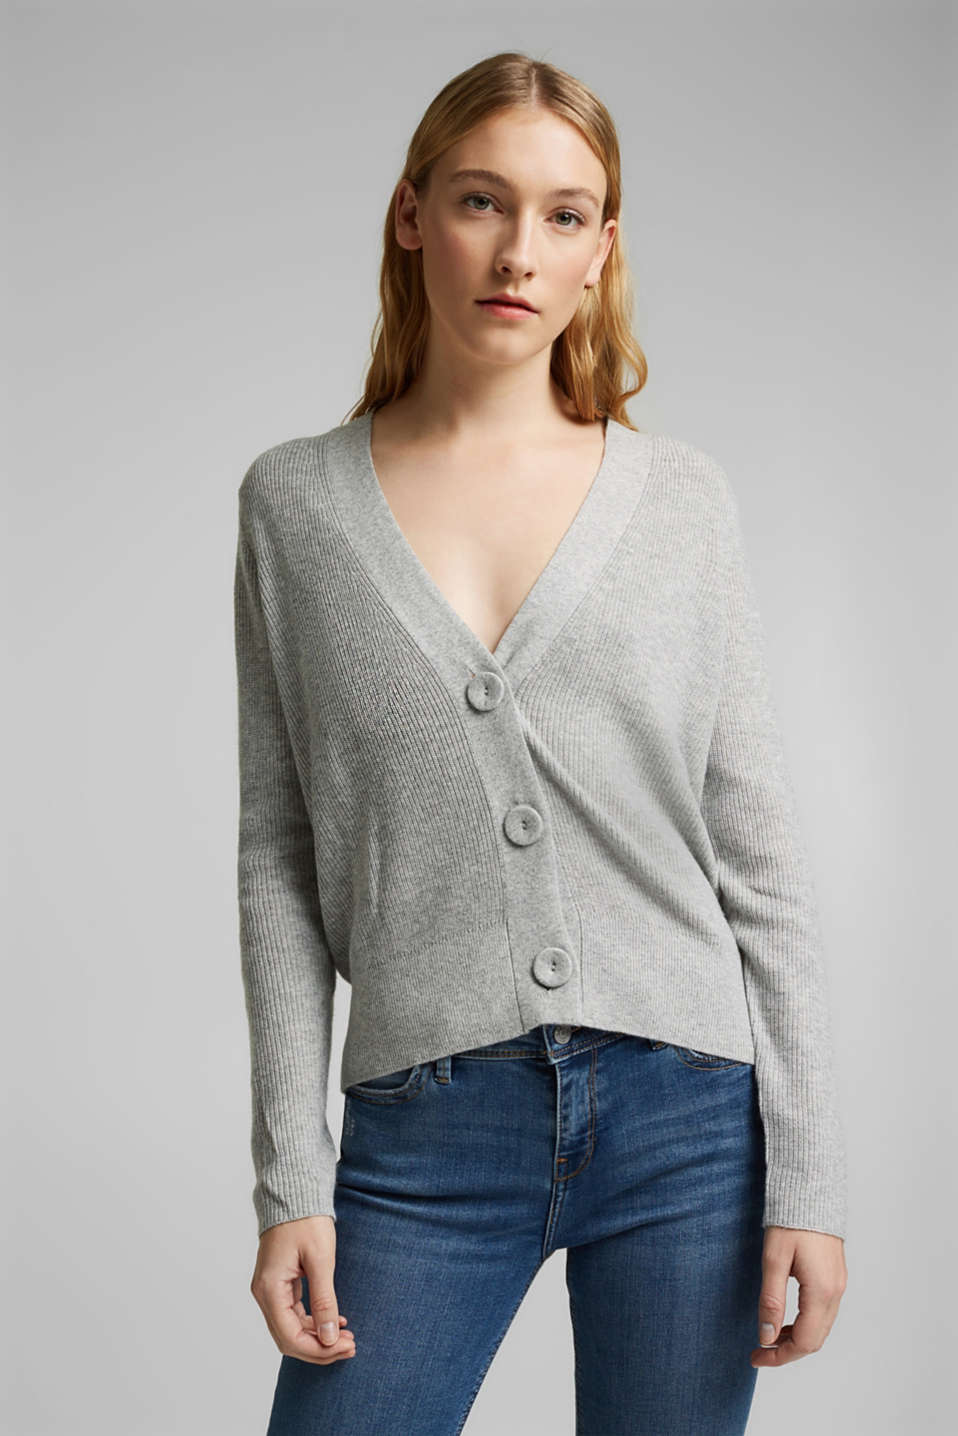 Esprit - With cashmere: cardigan with large buttons